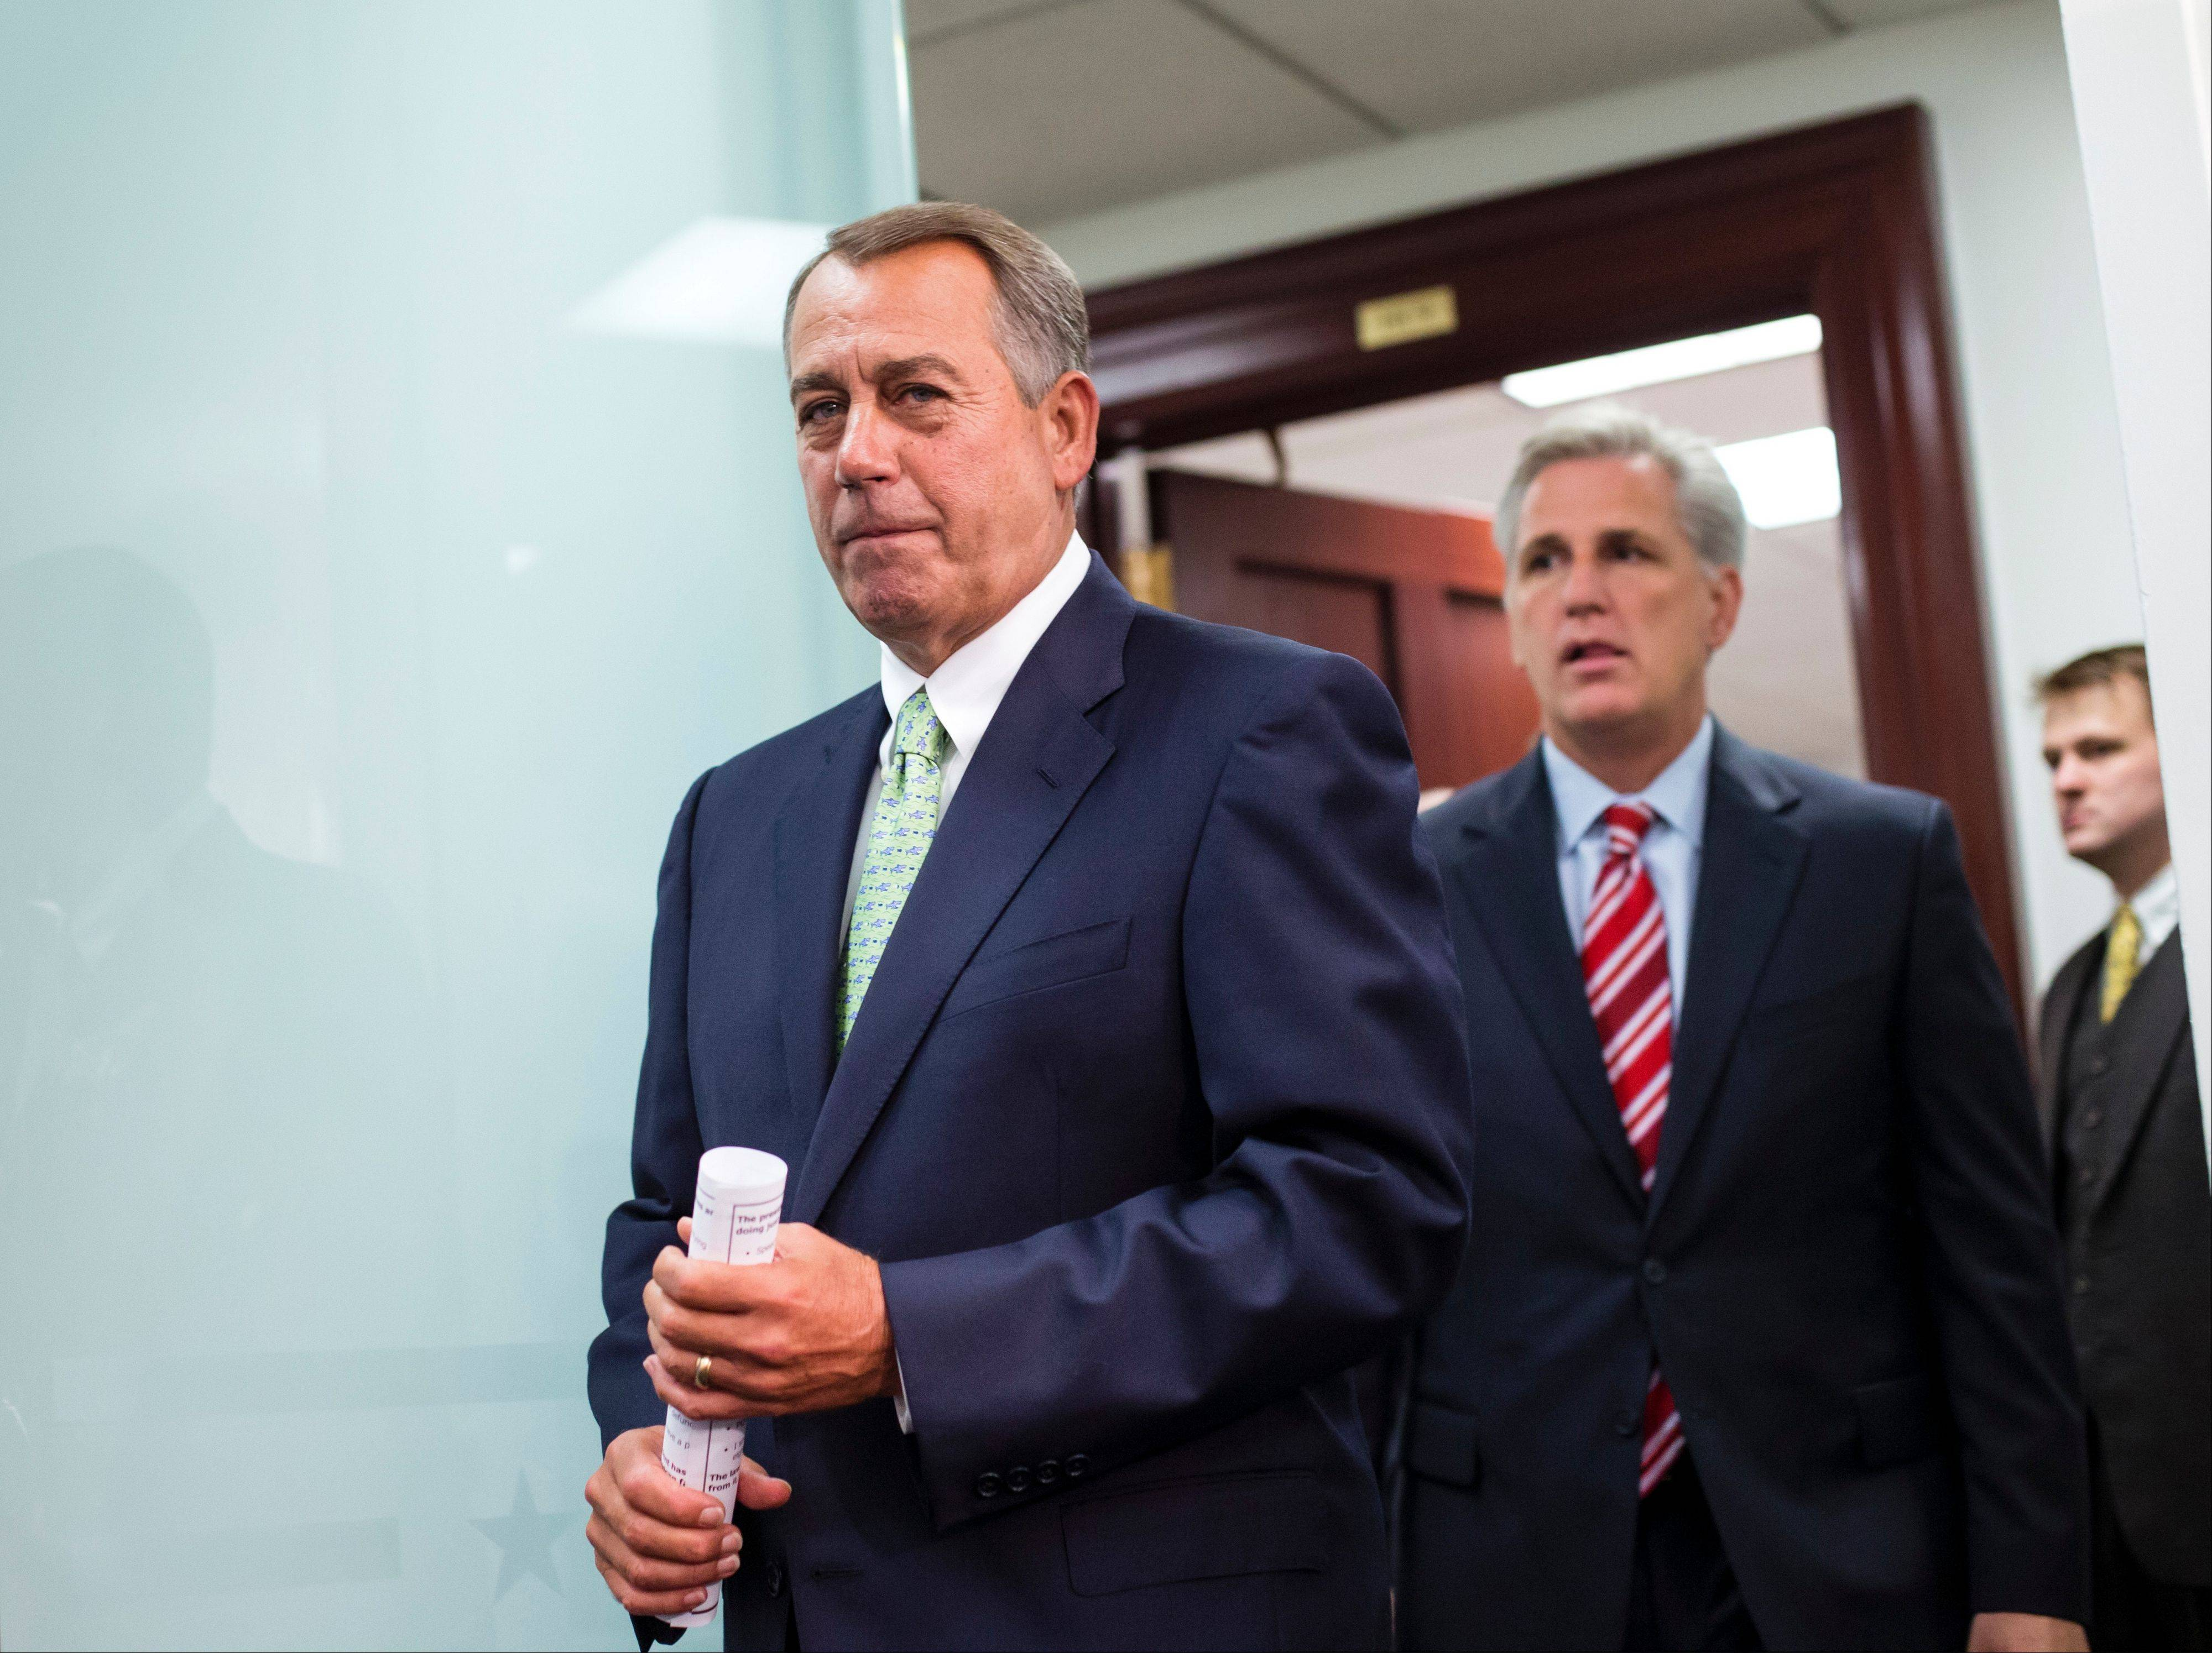 Speaker of the House John Boehner, R-Ohio, and House Republican leaders emerge from a closed-door strategy session at the Capitol, Wednesday, Sept. 18, 2013. The GOP-controlled House is cruising toward a vote to gut President Barack Obama�s health care plan as part of a temporary funding bill to prevent a partial government shutdown on Oct. 1.